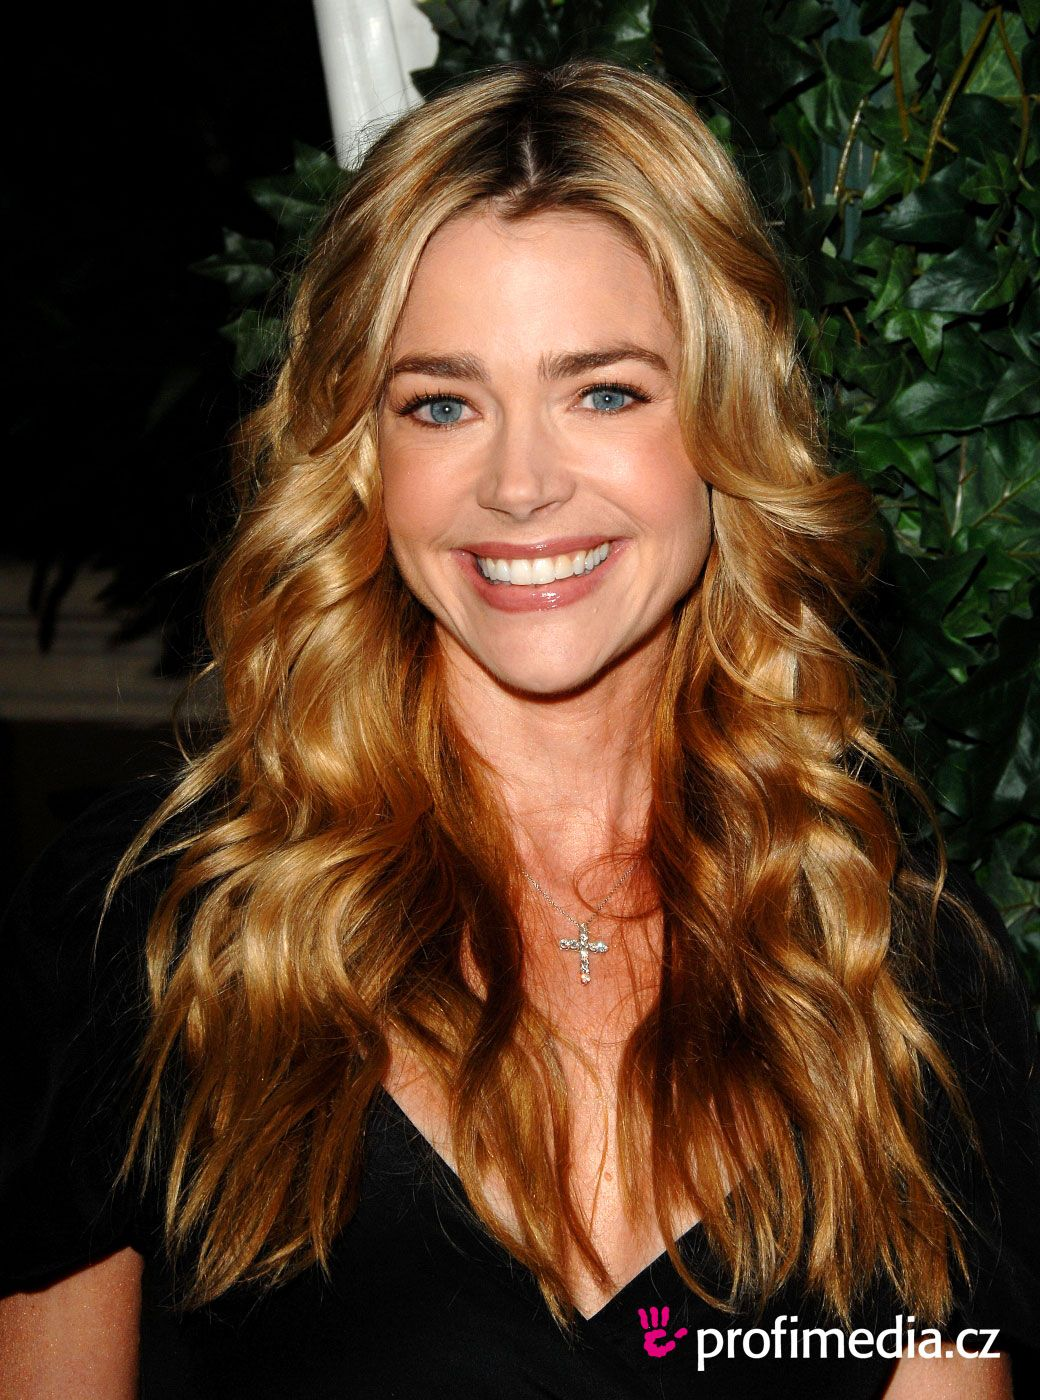 Denise Richards Chignon Hairstyles for Long Hair Denise Richards Chignon Hairstyles for Long Hair new images